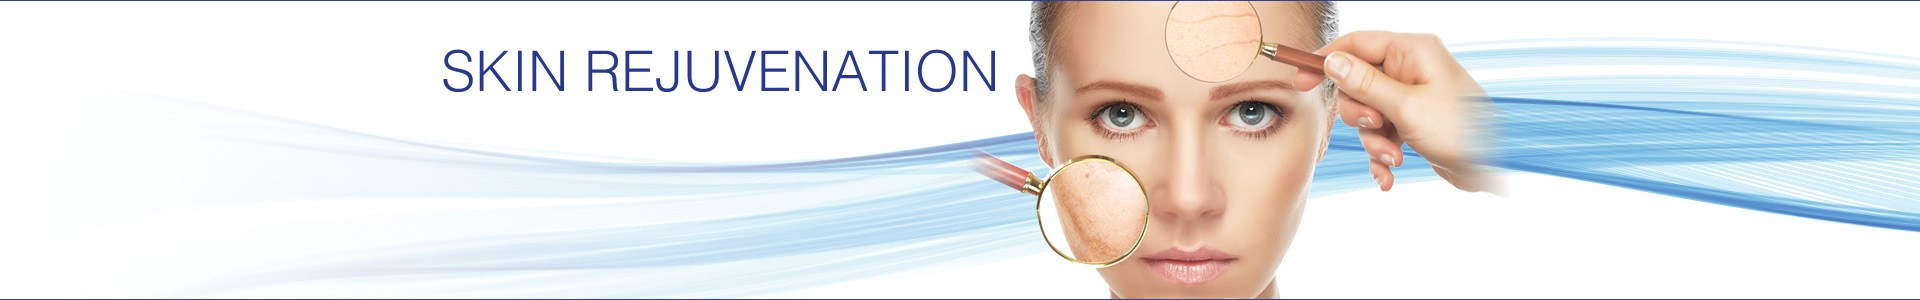 Skin Rejuvenation - Smooth Skin Health Centre Hamilton